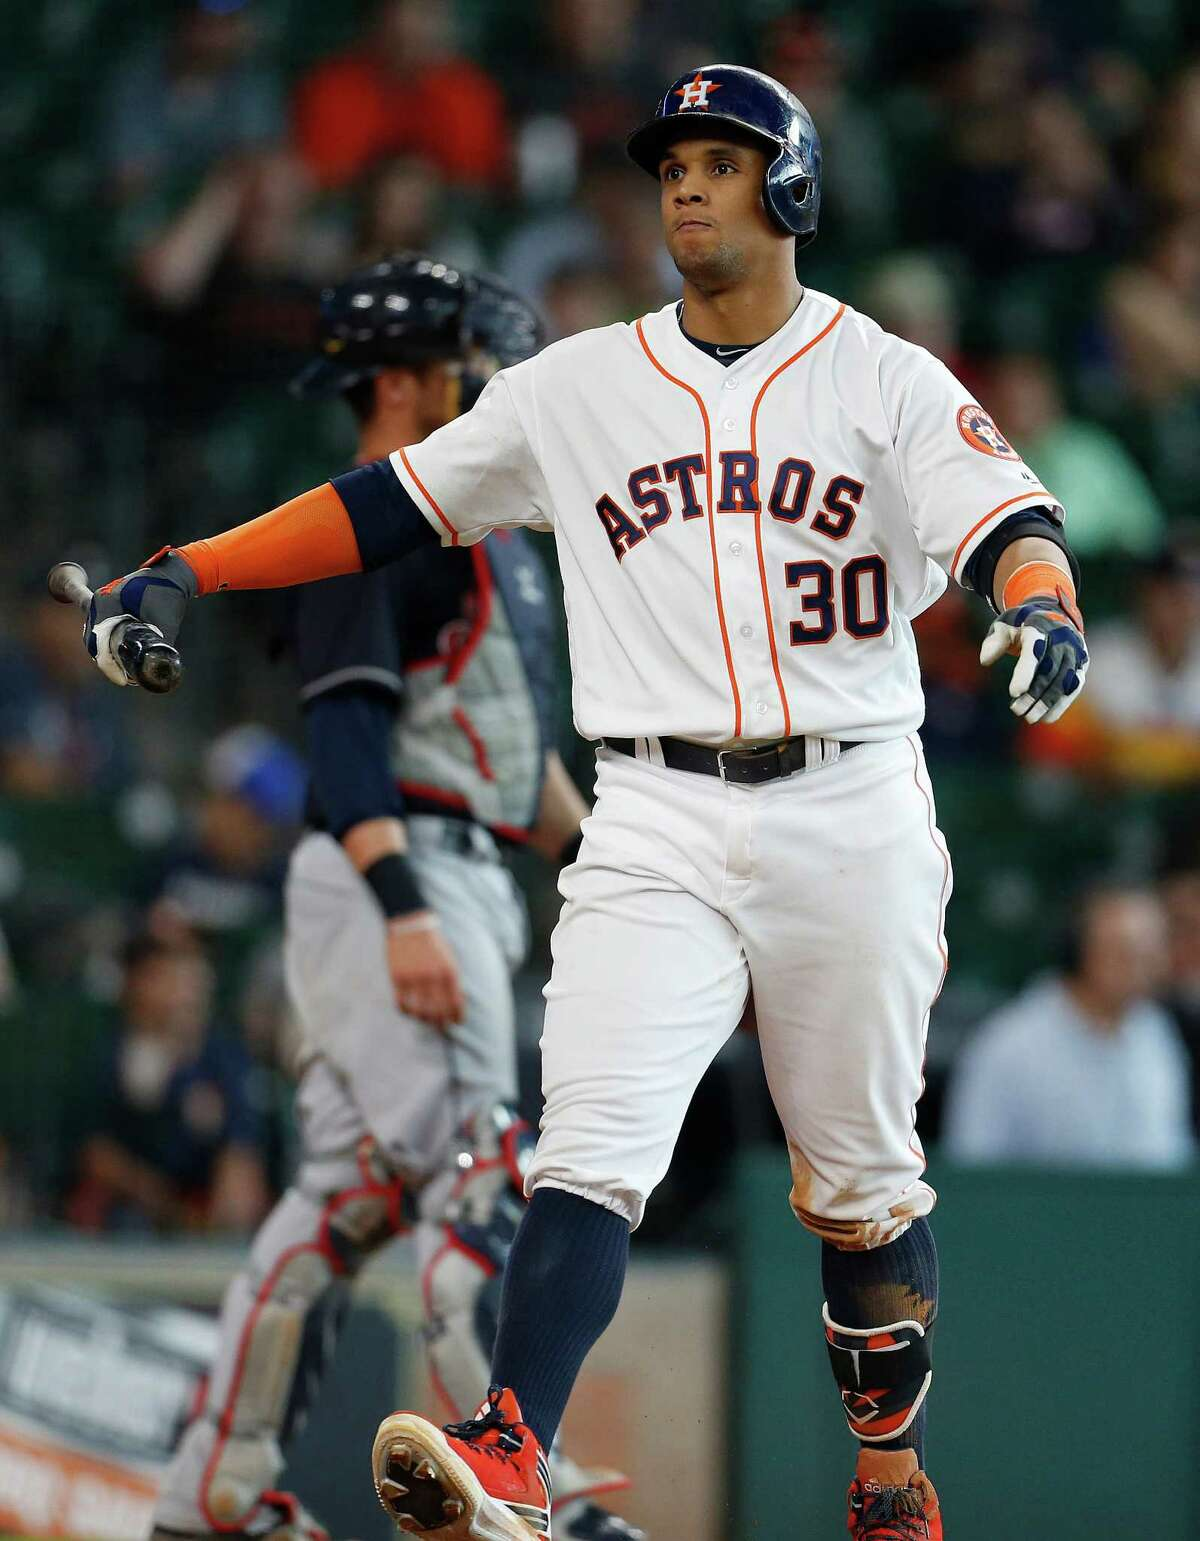 Among the 156 players with 130 or more plate appearances this season, Carlos Gomez ranks 155th in OPS.